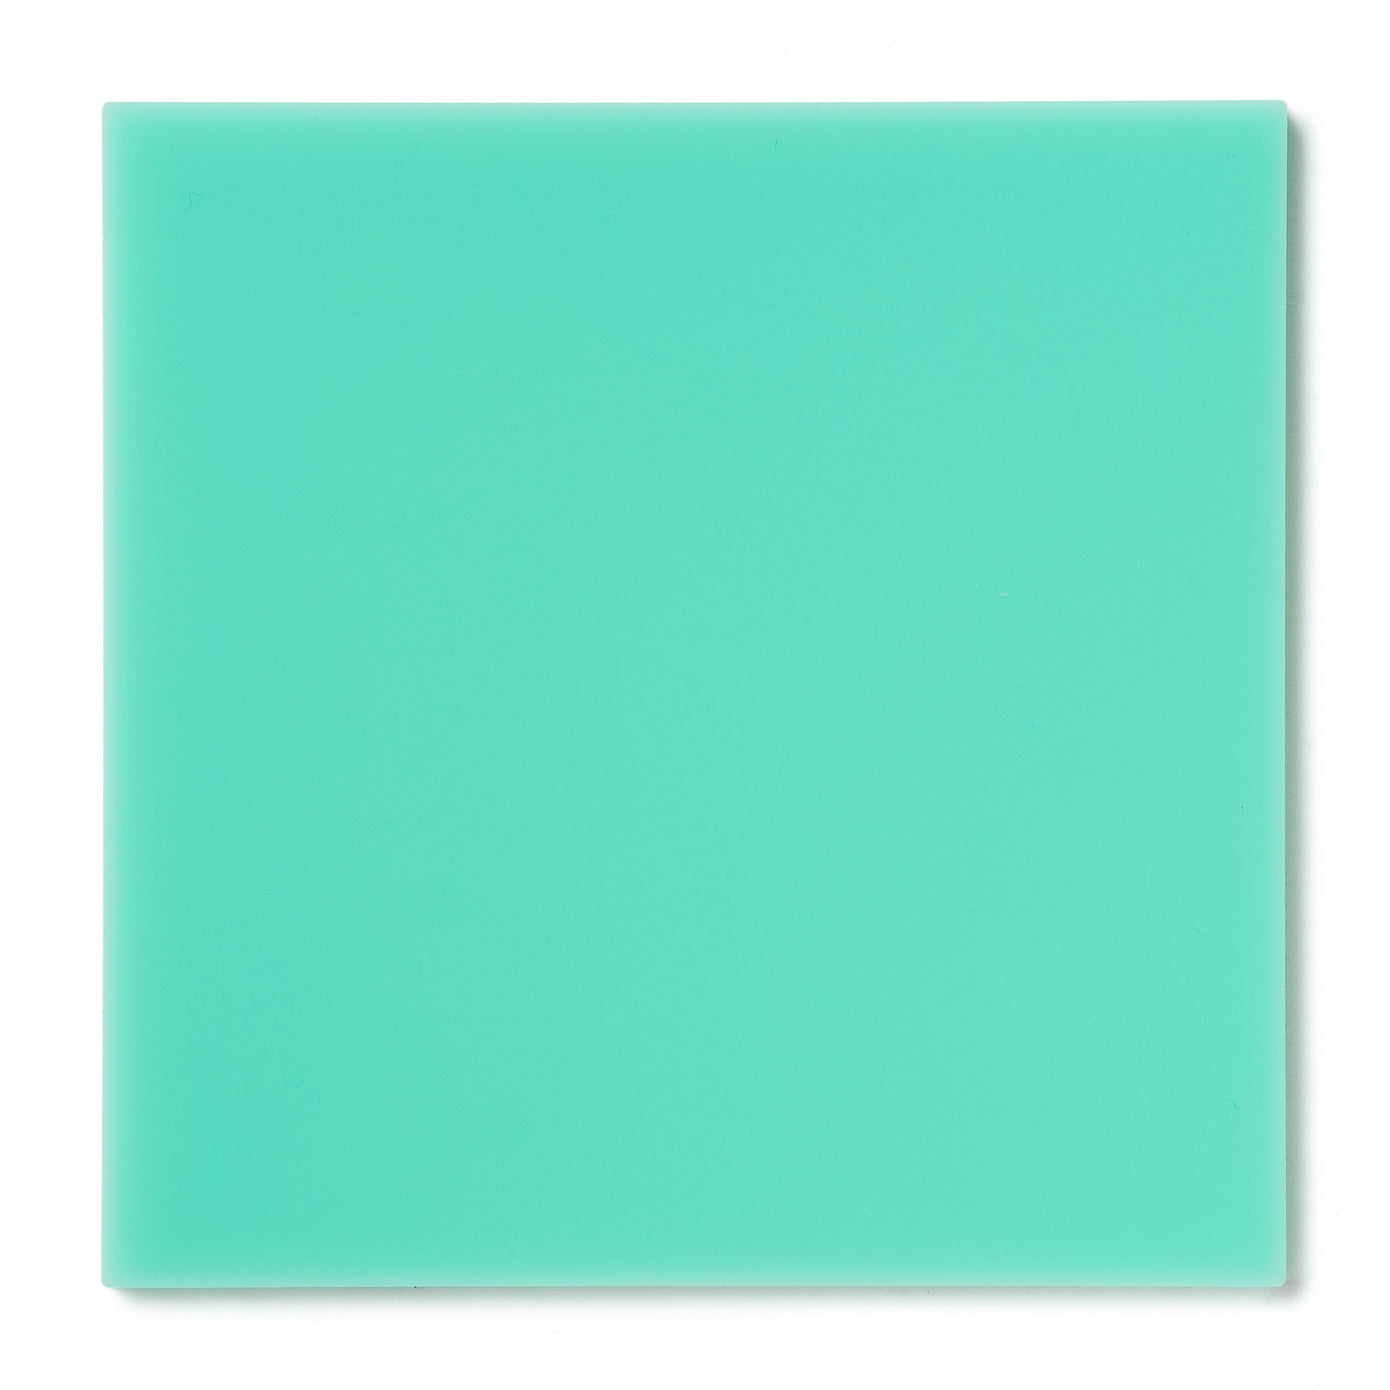 Turquoise Opaque Acrylic Sheet – Canal Plastics Center